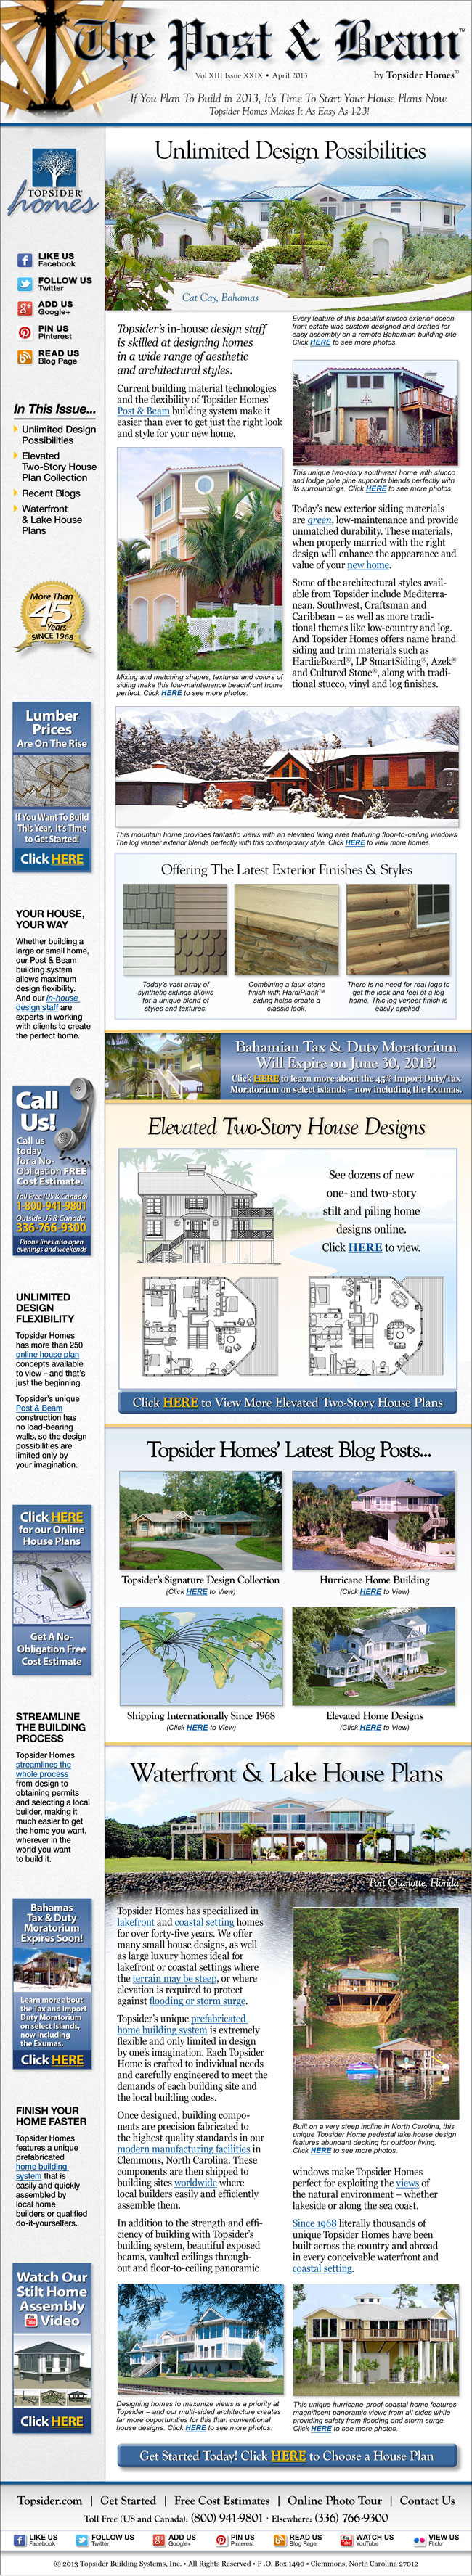 Topsider Homes April 2013 eNewsletter